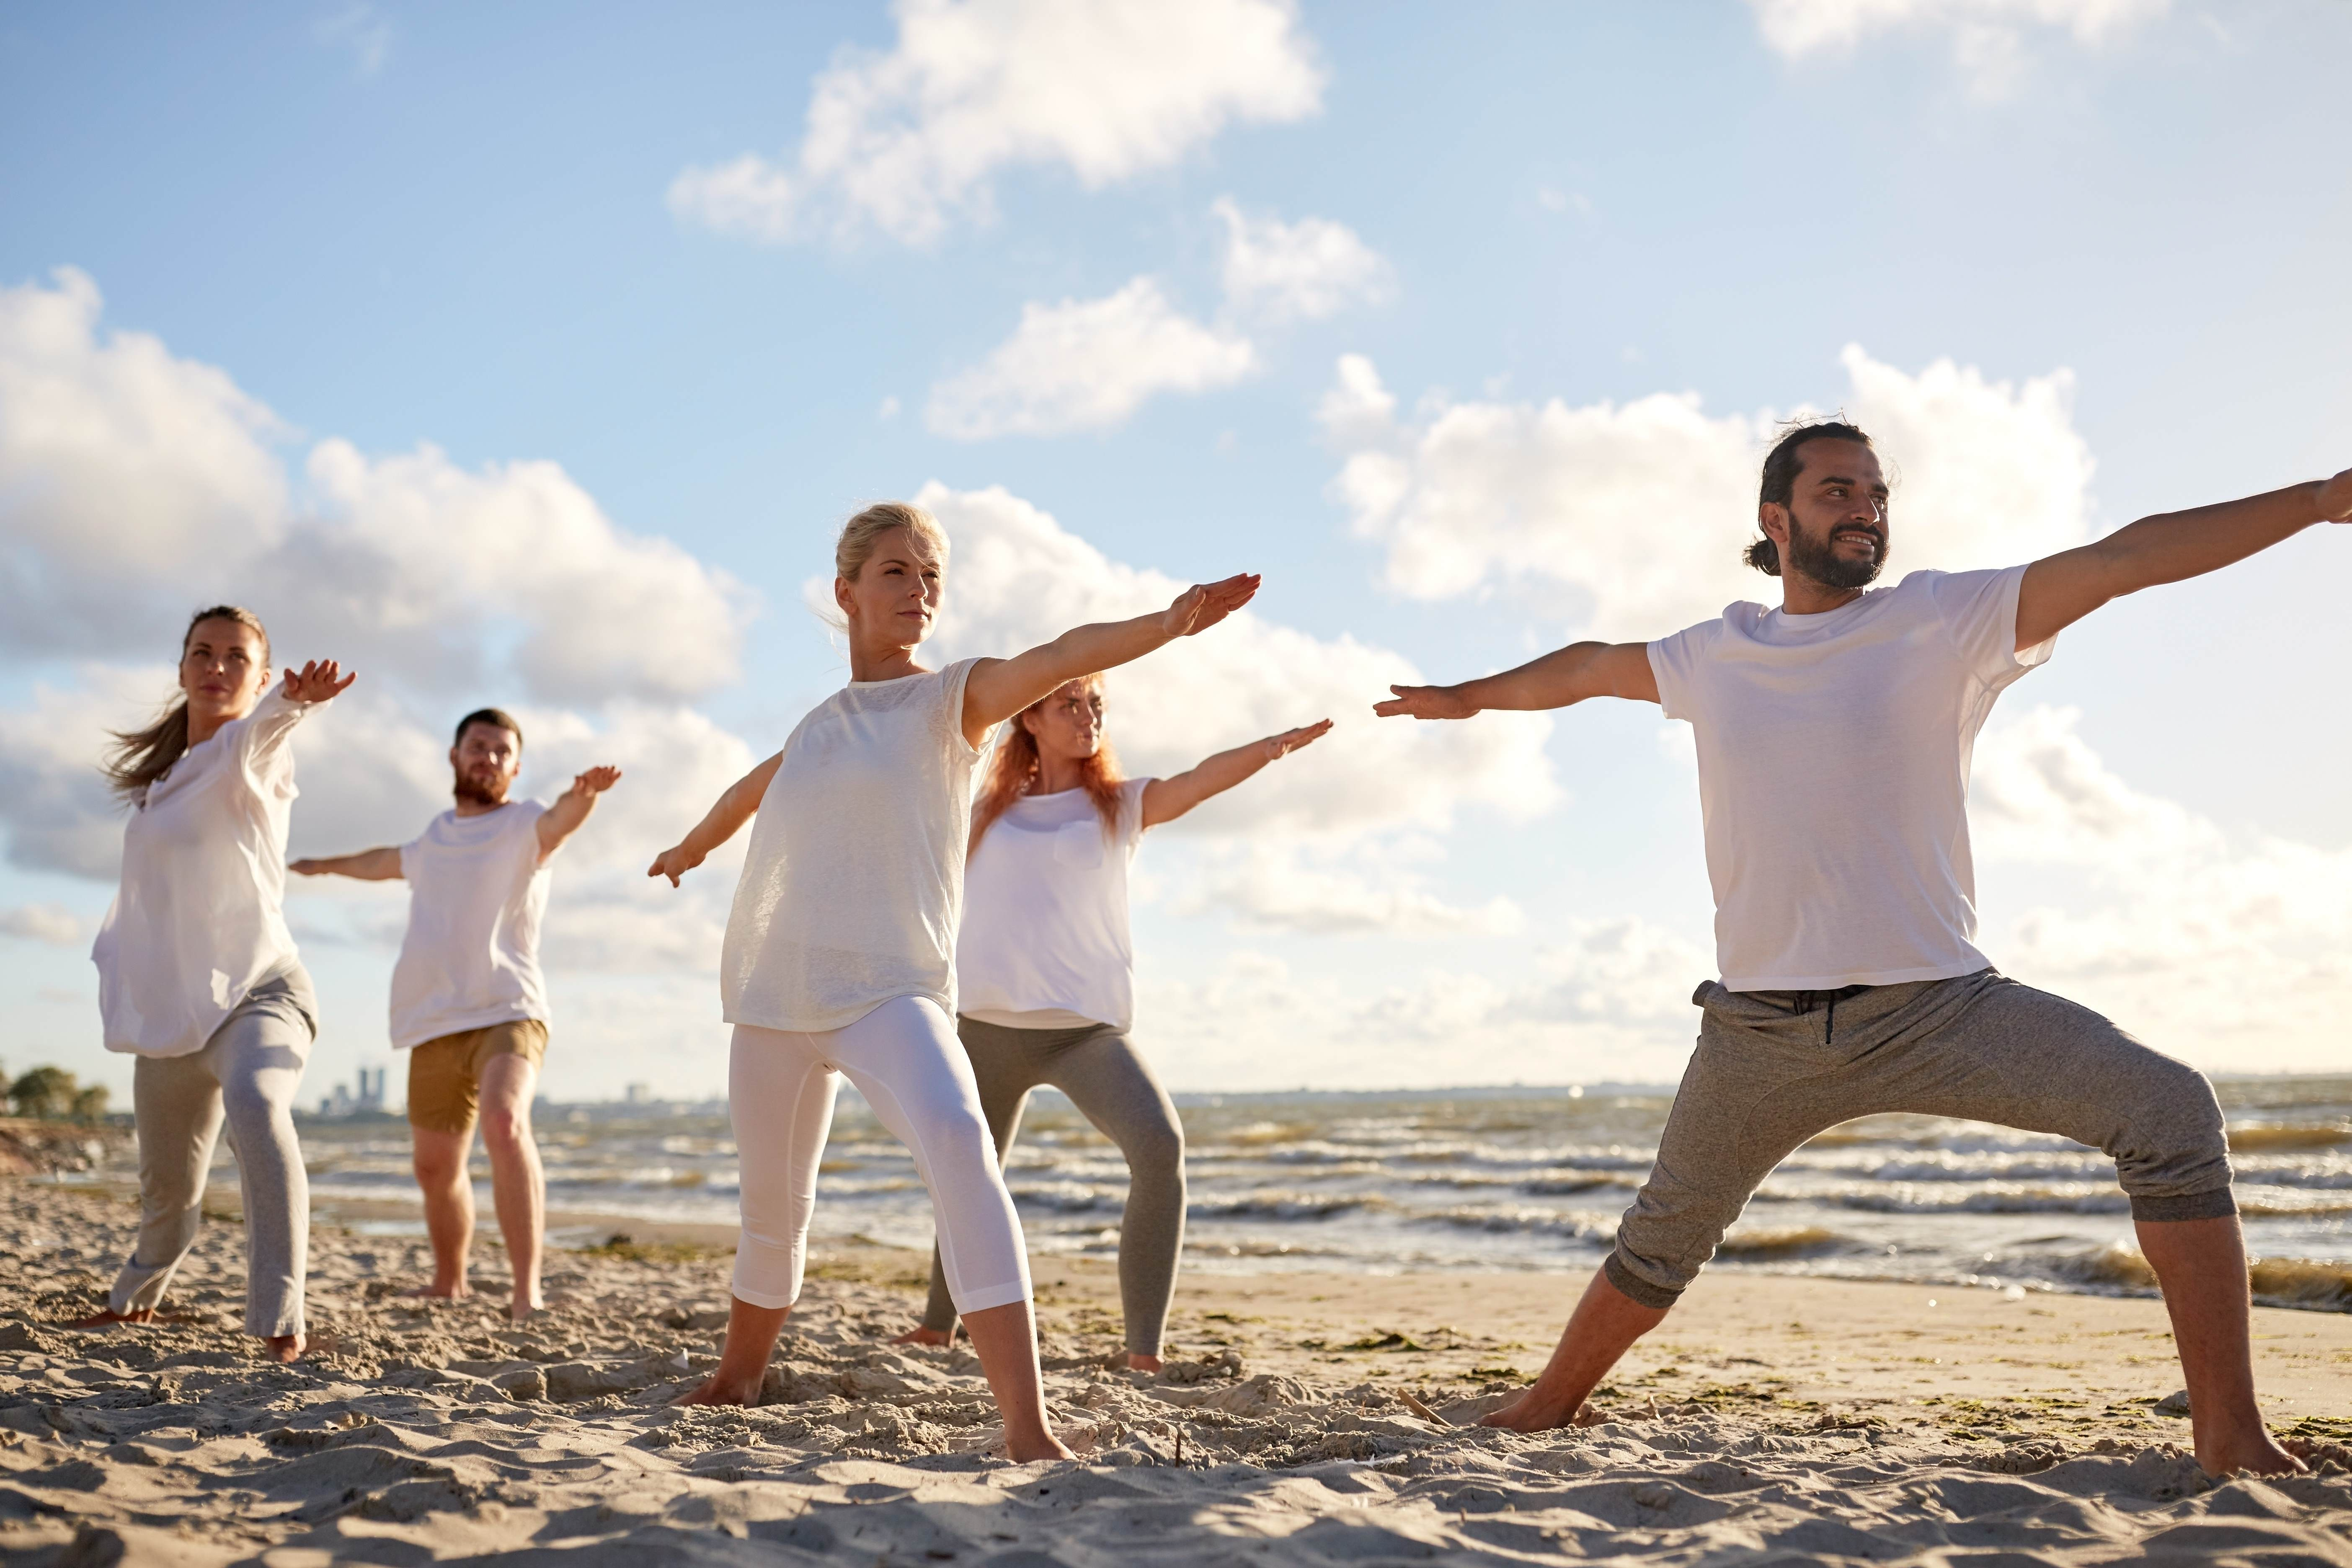 Group of men and women practising yoga at the beach in keeping with the global Active Beauty trend of body care in terms of fitness and pampering